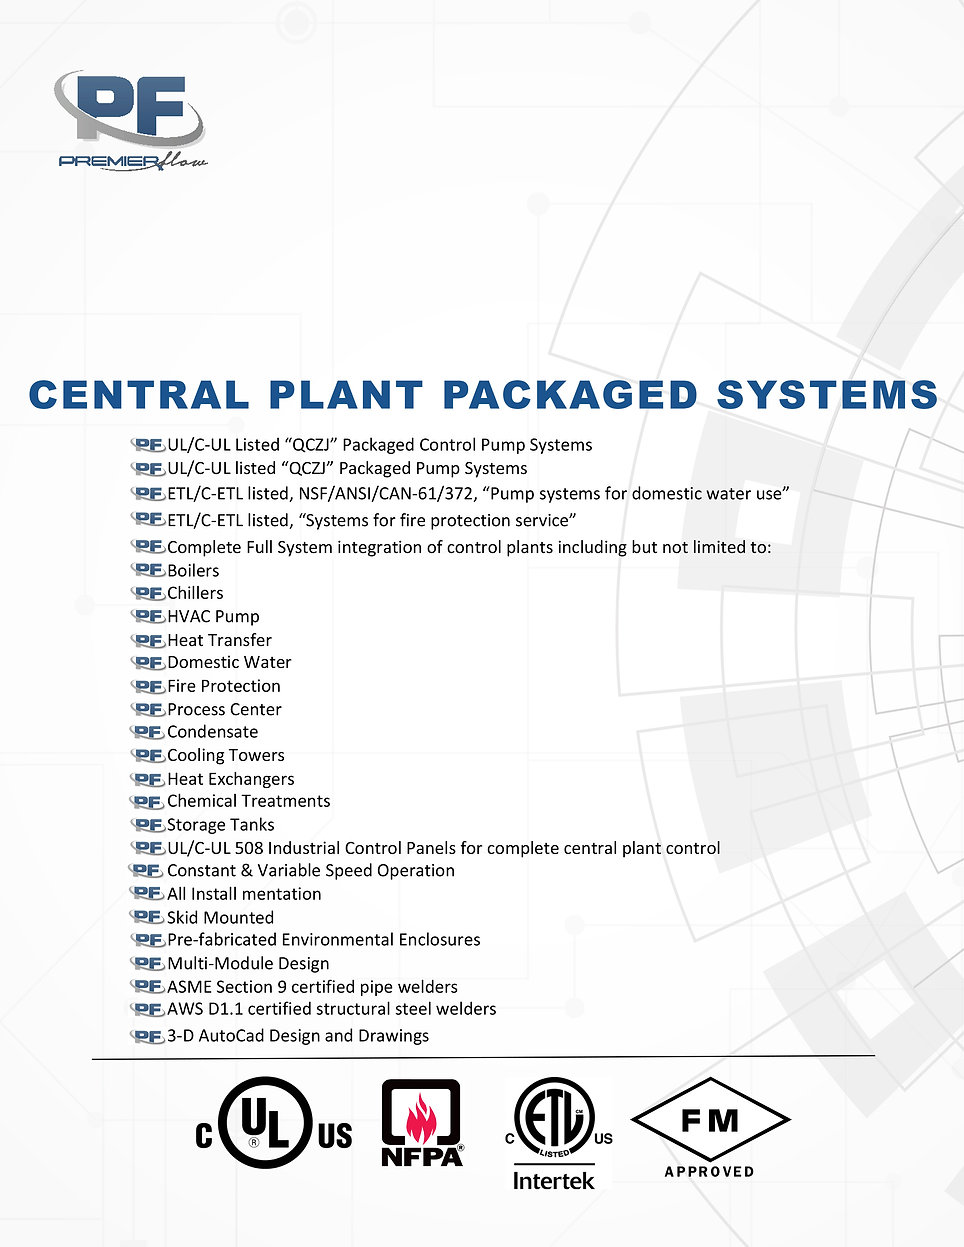 Central Plant Packaged Systems.jpg